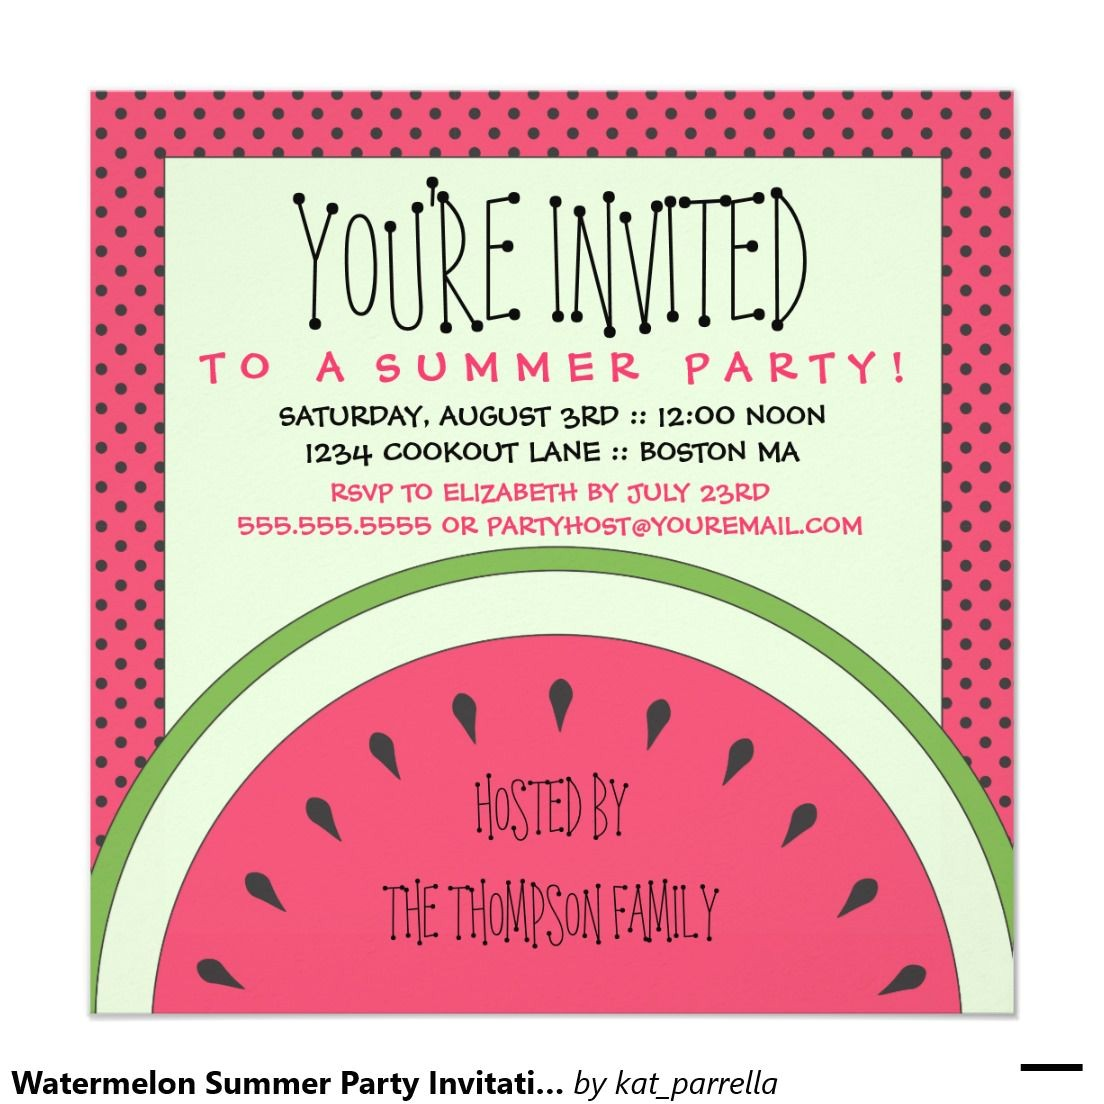 Cost Of Party Invitations the Party Invitation Wording Free Invitations Templates